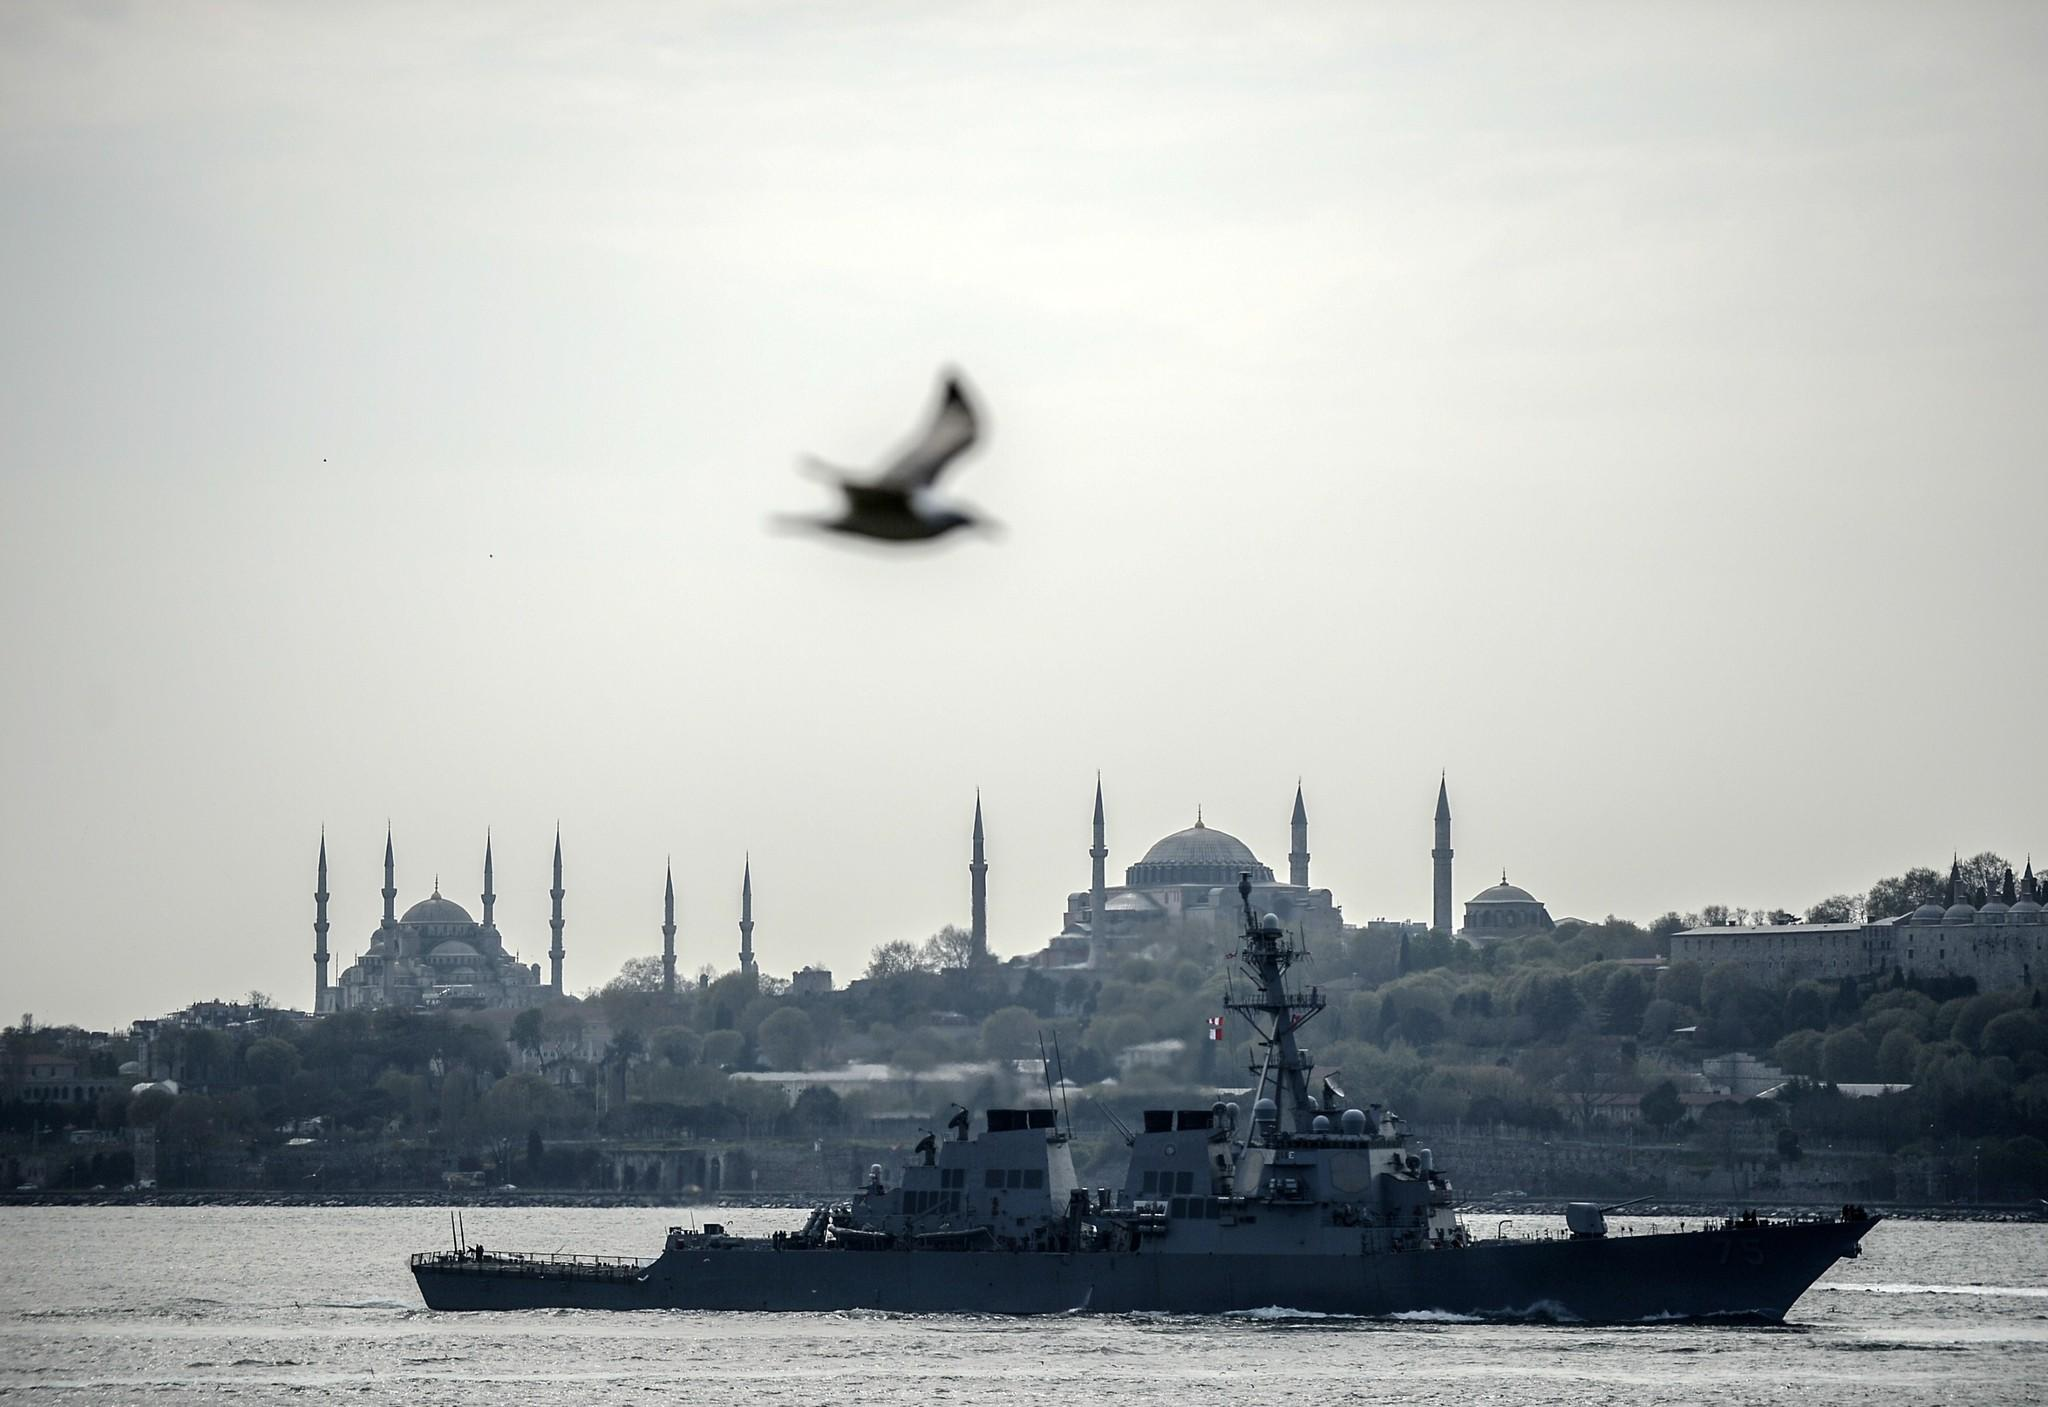 The U.S. guided-missile destroyer Donald Cook sails past Istanbul, Turkey, en route to the Black Sea.